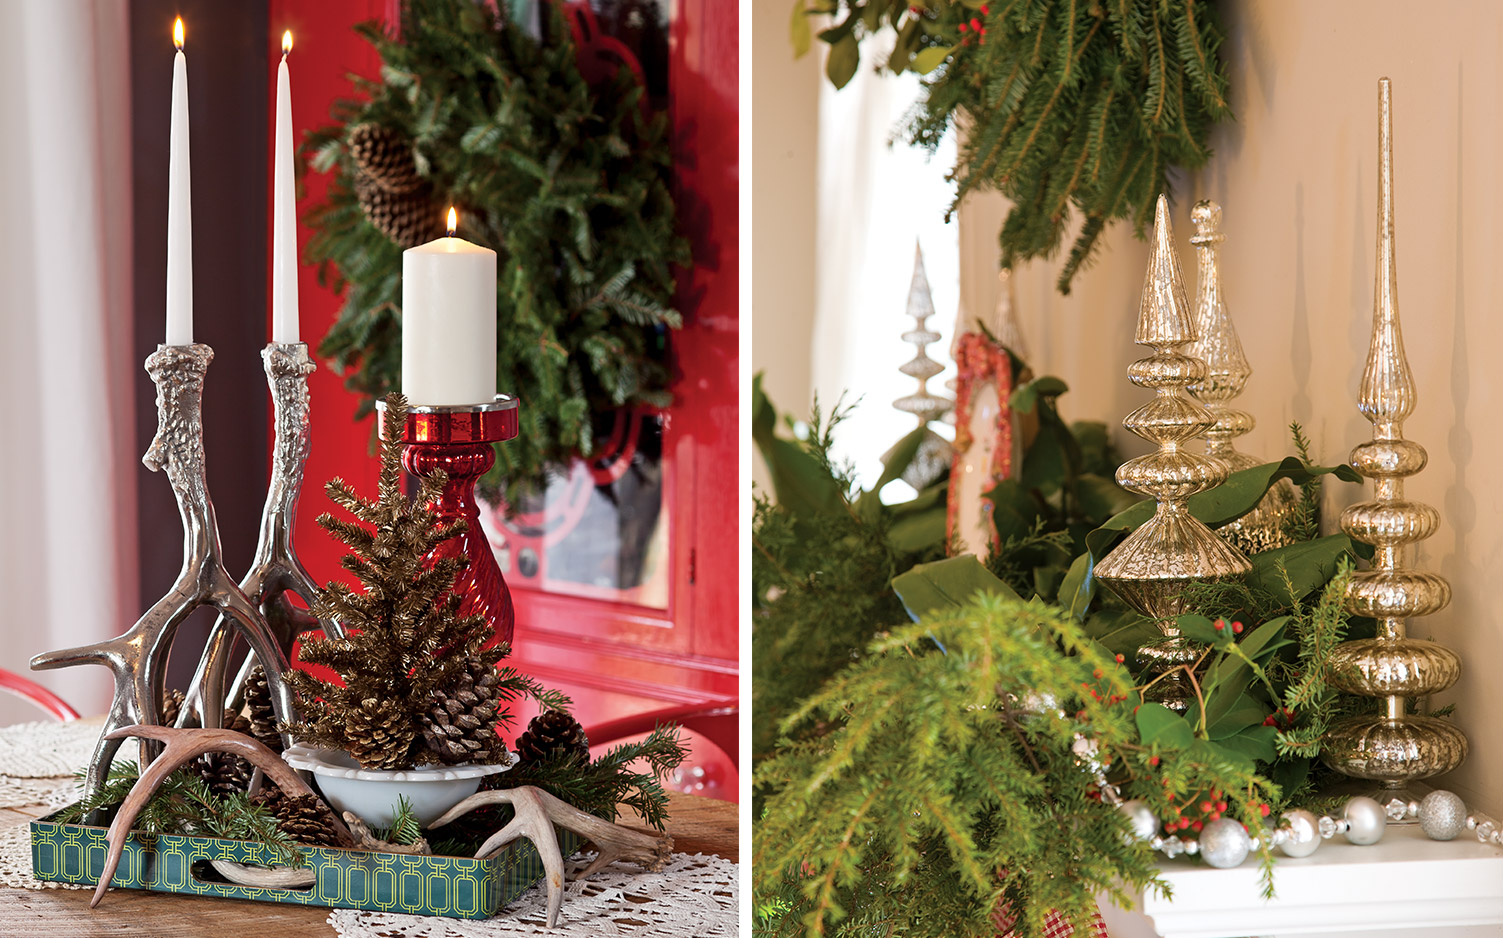 Entertaining Touches for the Holidays